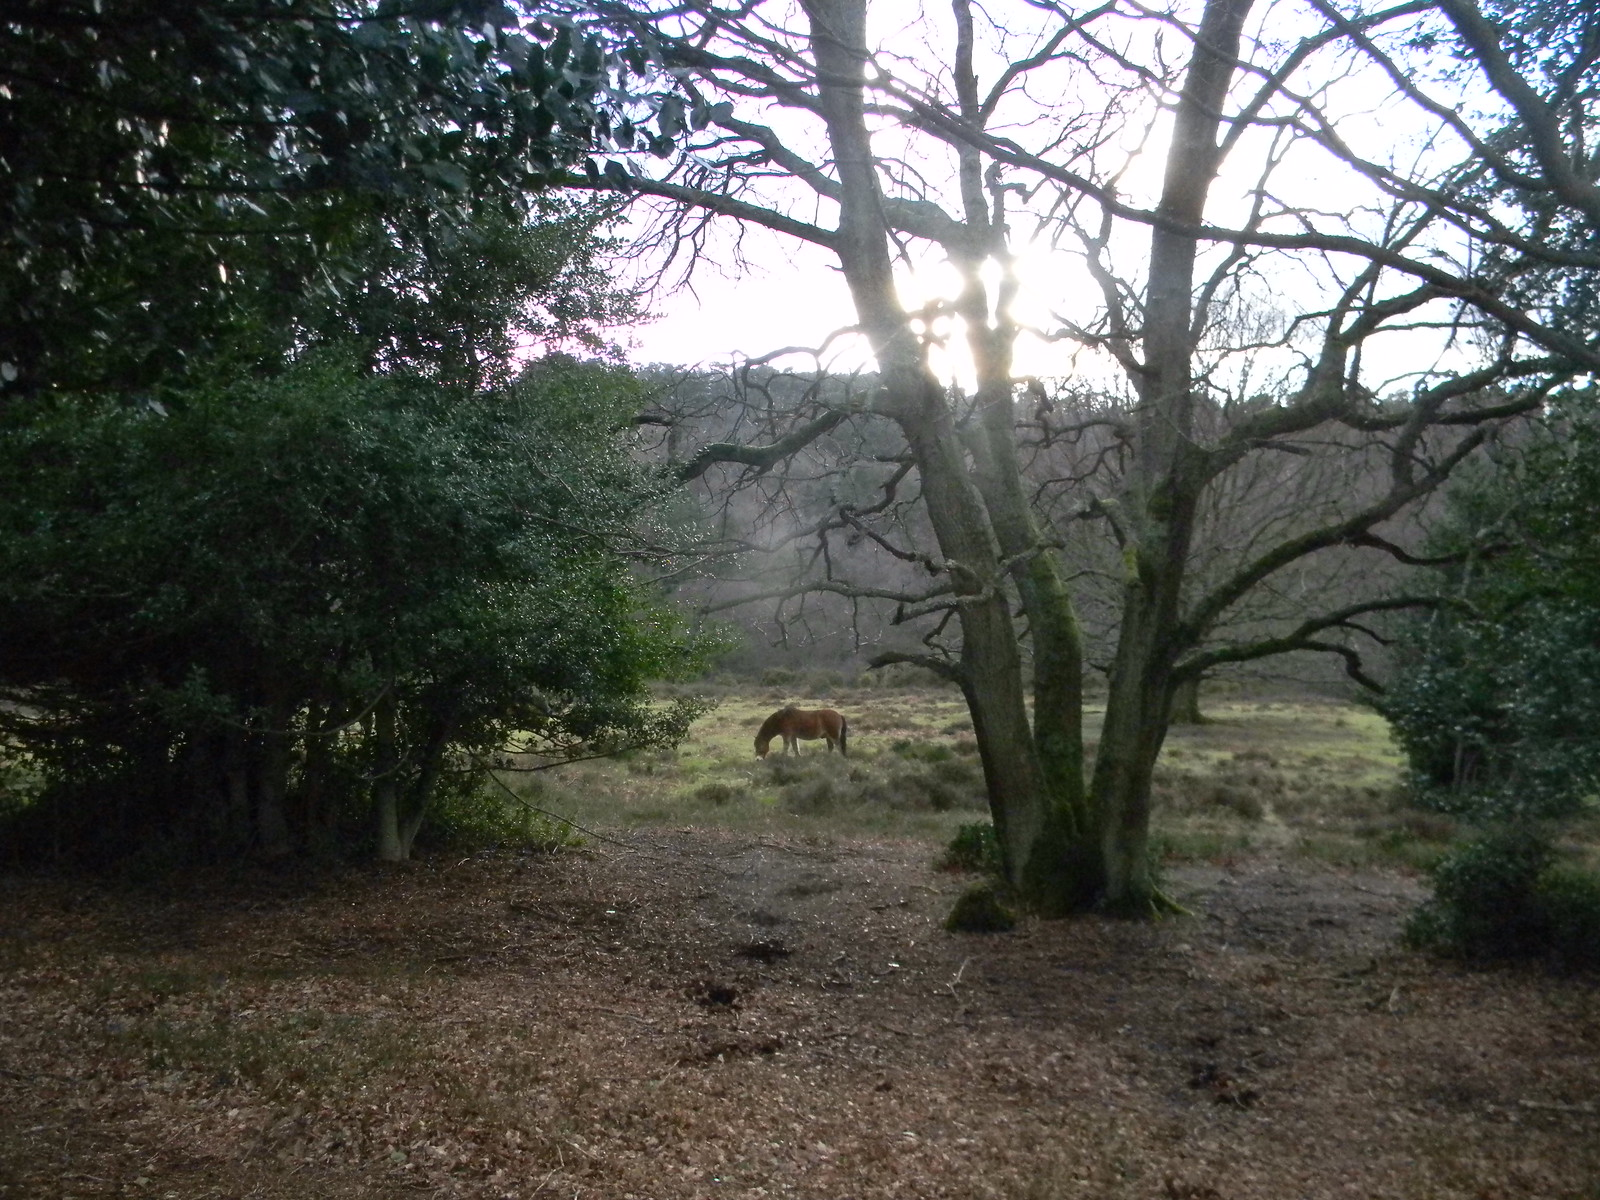 Punchbowl pony Milford to Haslemere